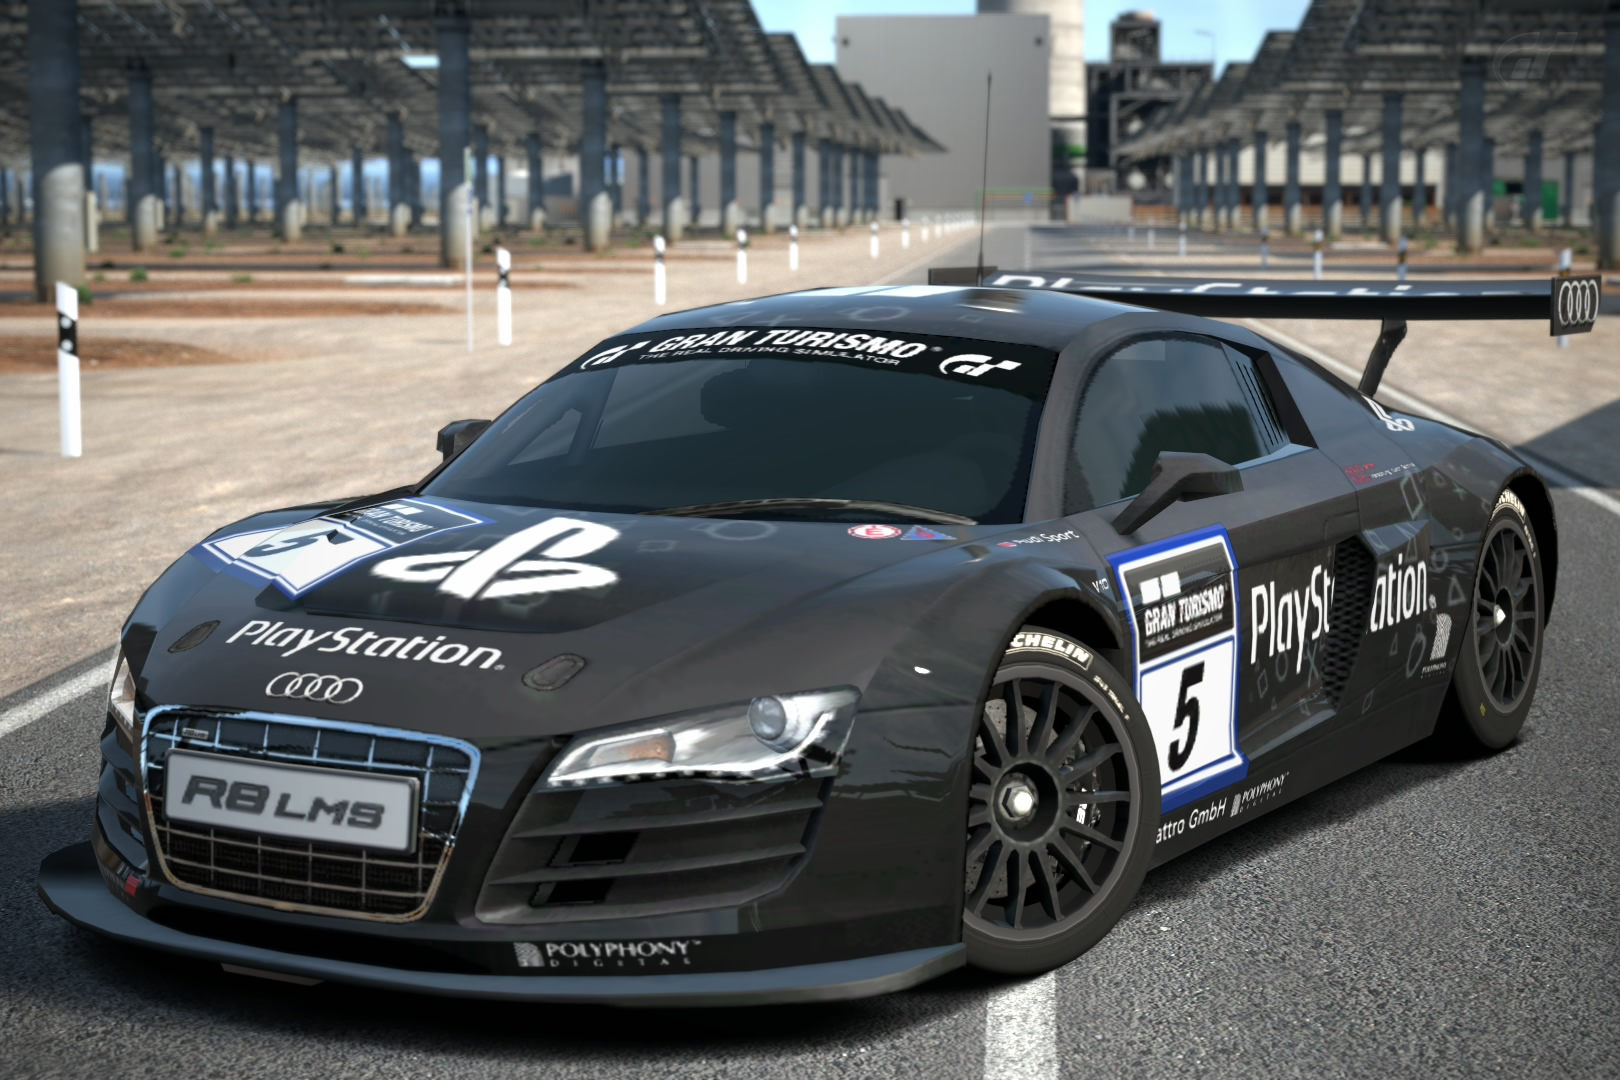 Audi R8 LMS Race Car (Team PlayStation) U002709